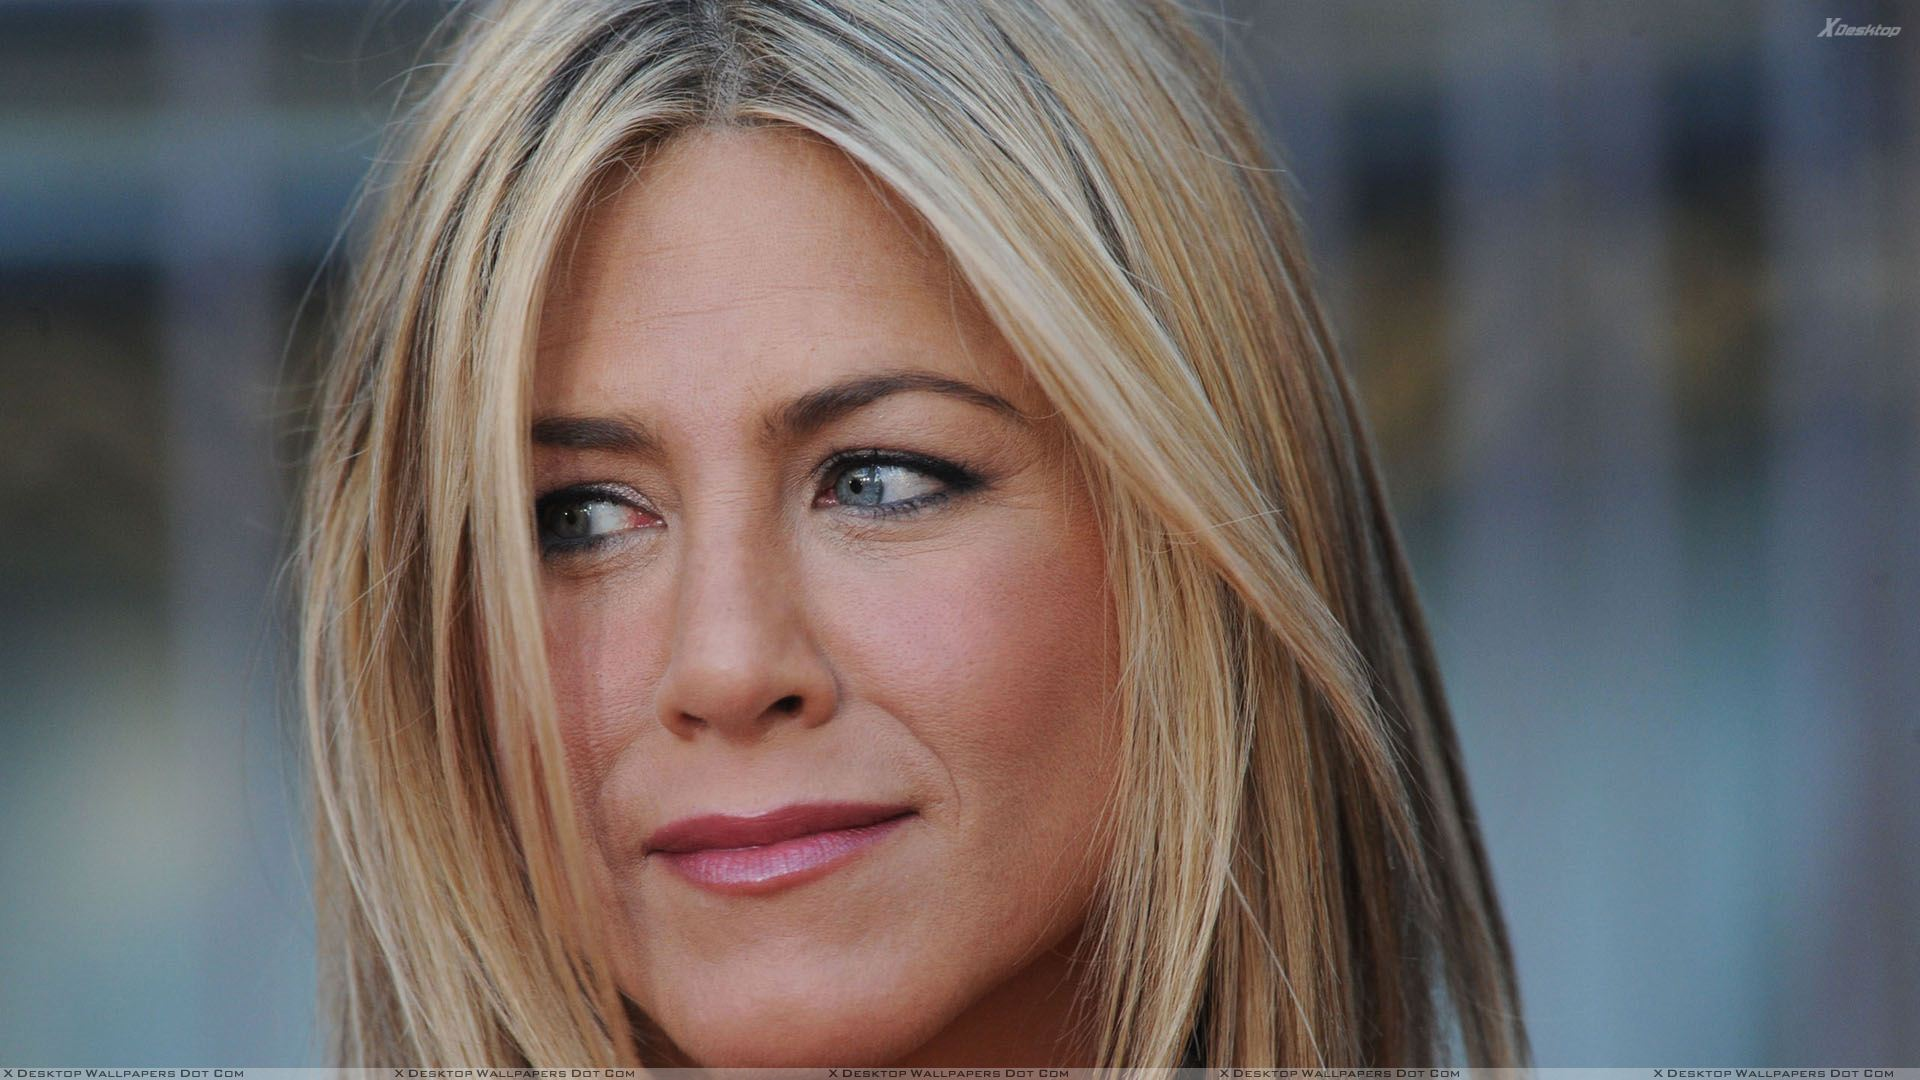 jennifer aniston face closeup at horrible bosses premiere in